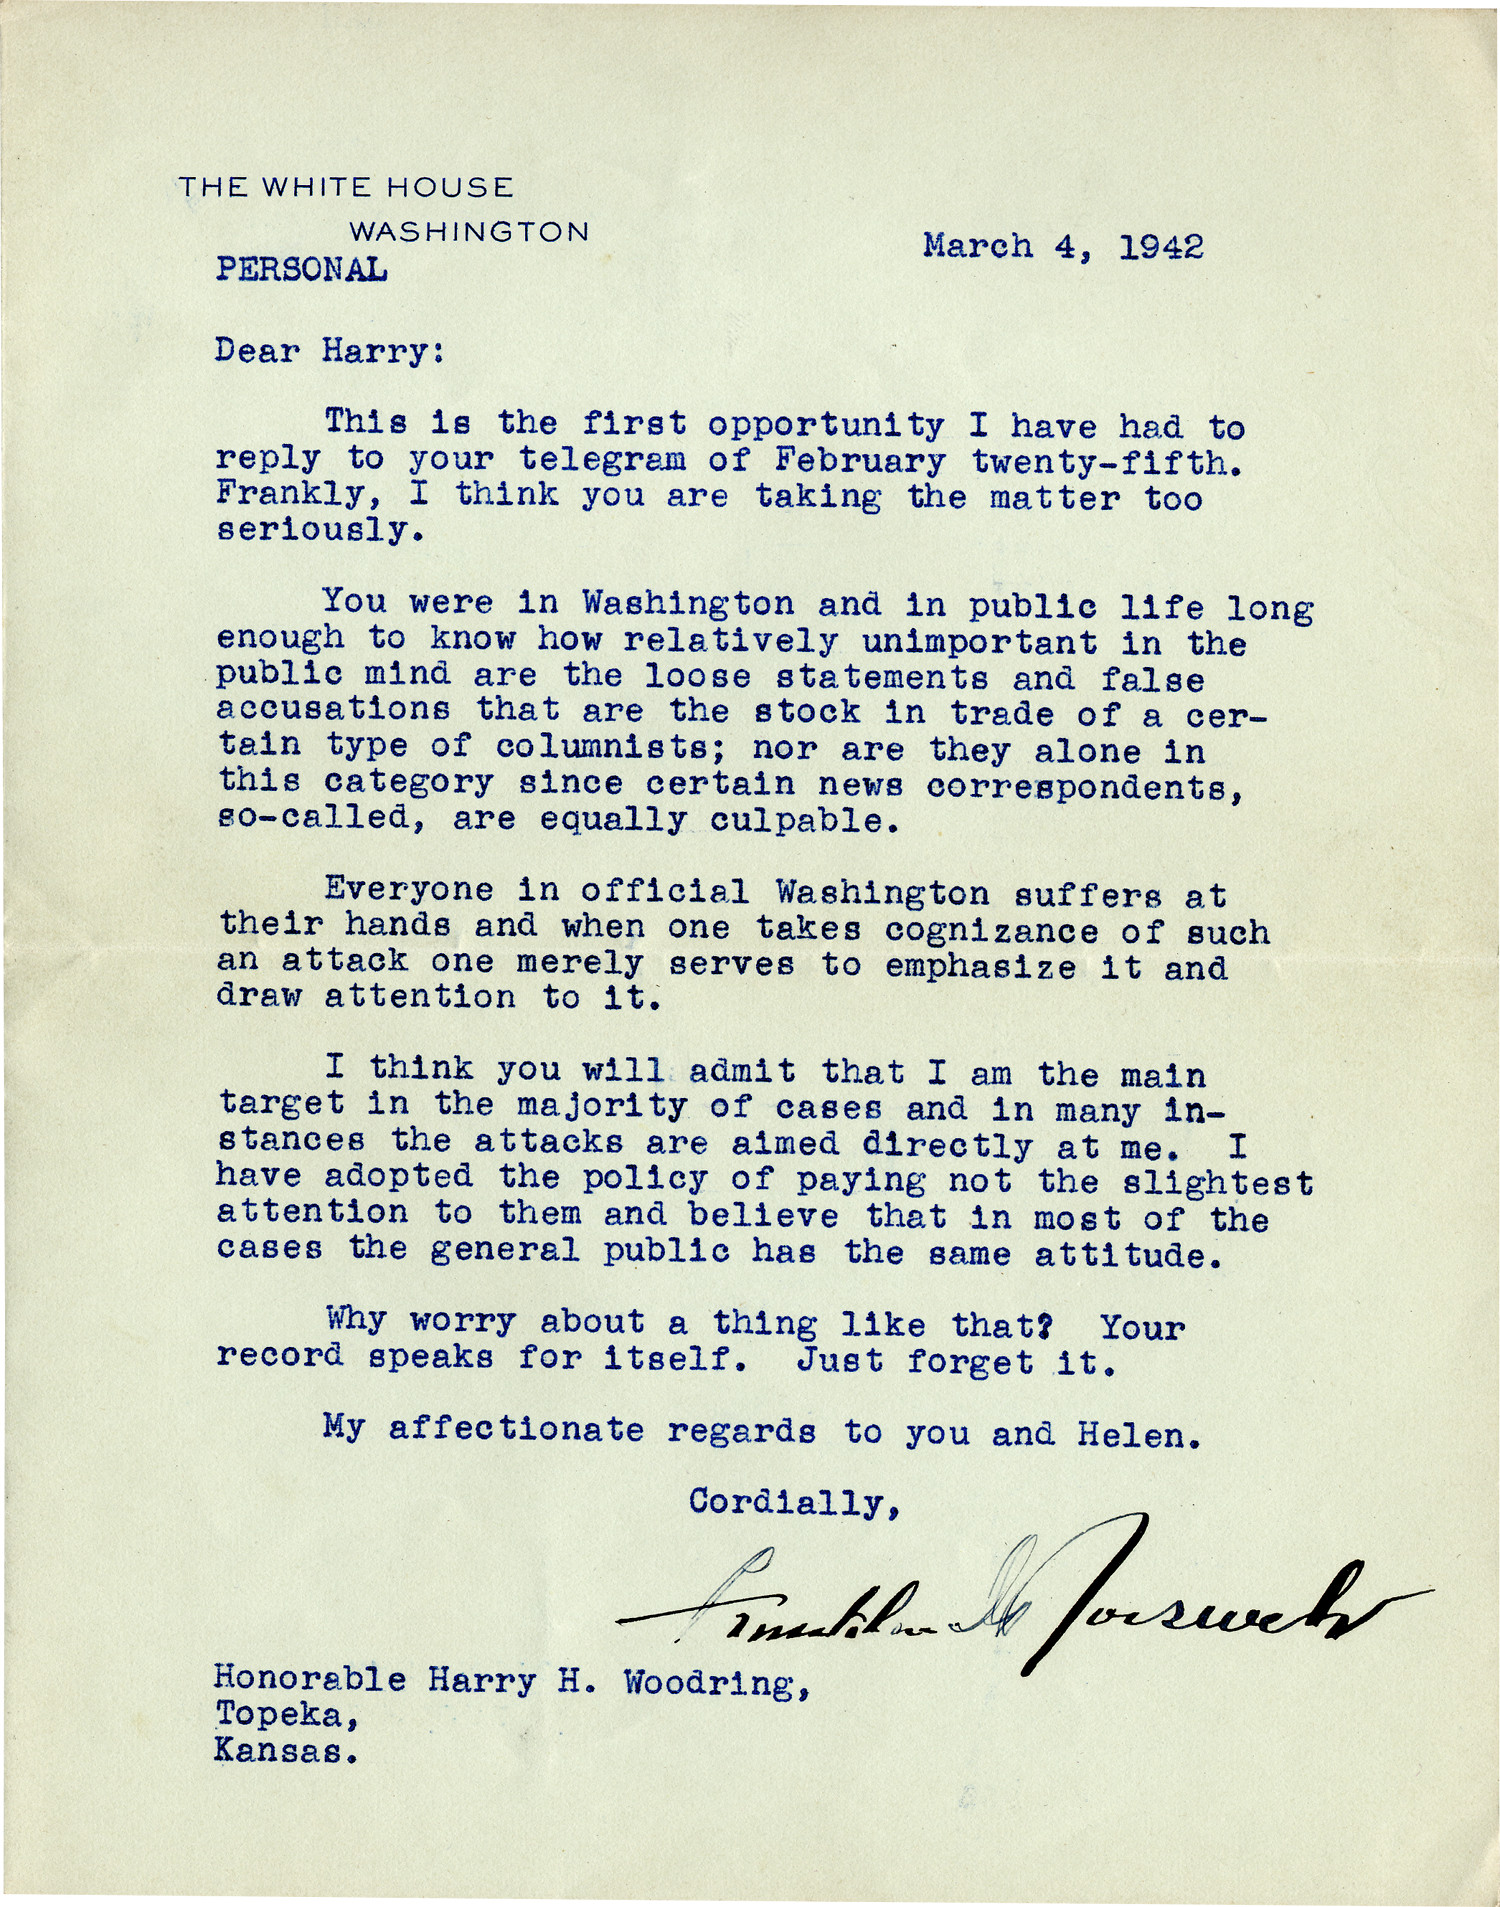 Roosevelt Advises Scapegoated Woodring On How To Handle Negative Press Following Pearl Harbor